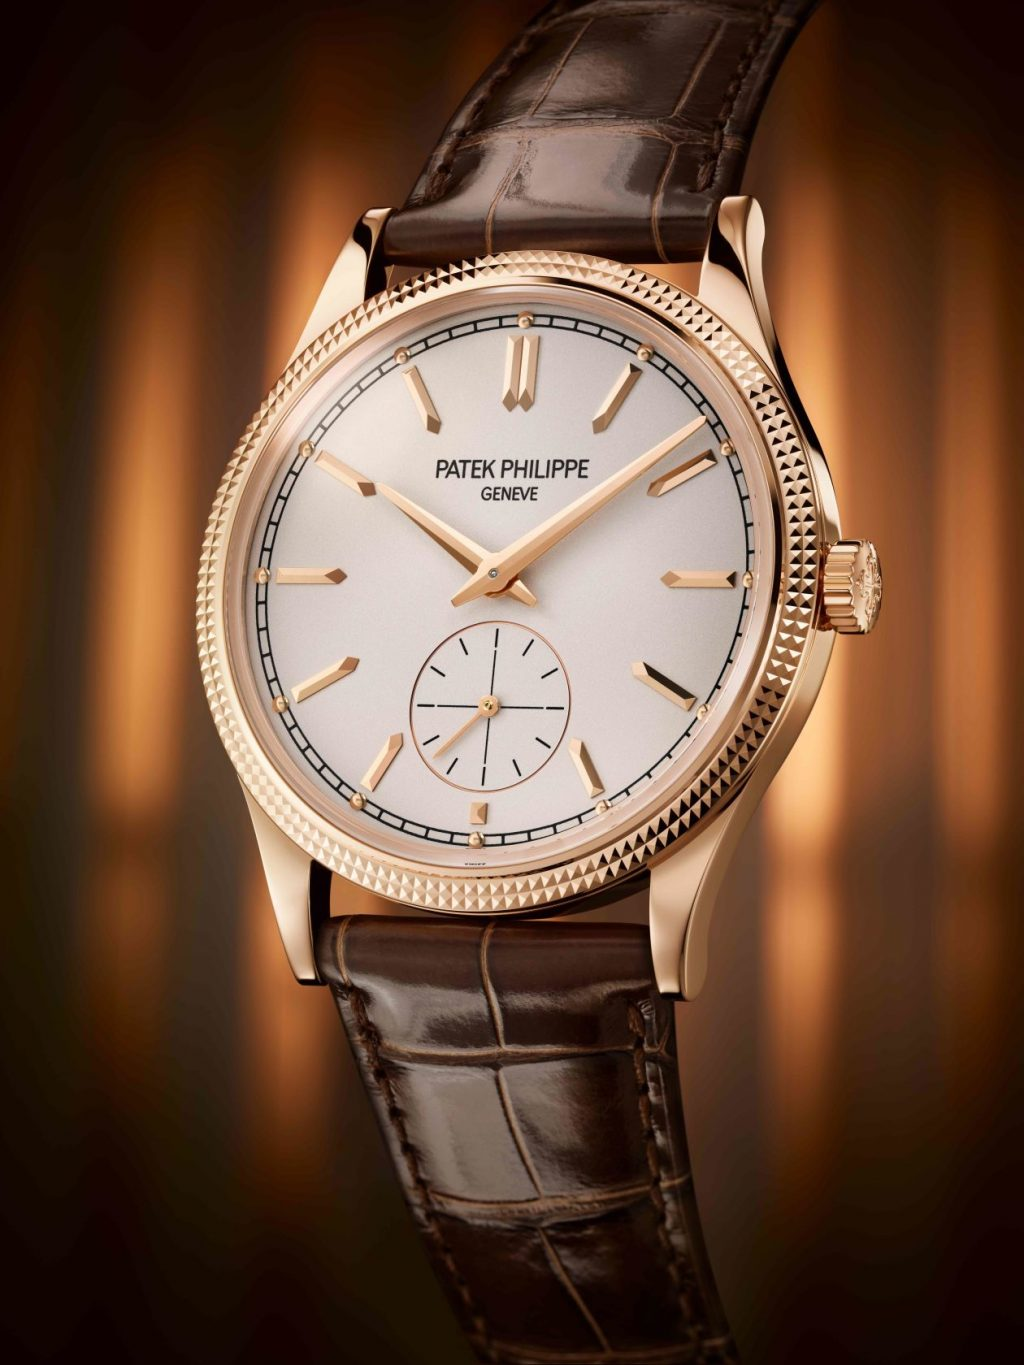 The Calatrava Clous de Paris Patek Philippe